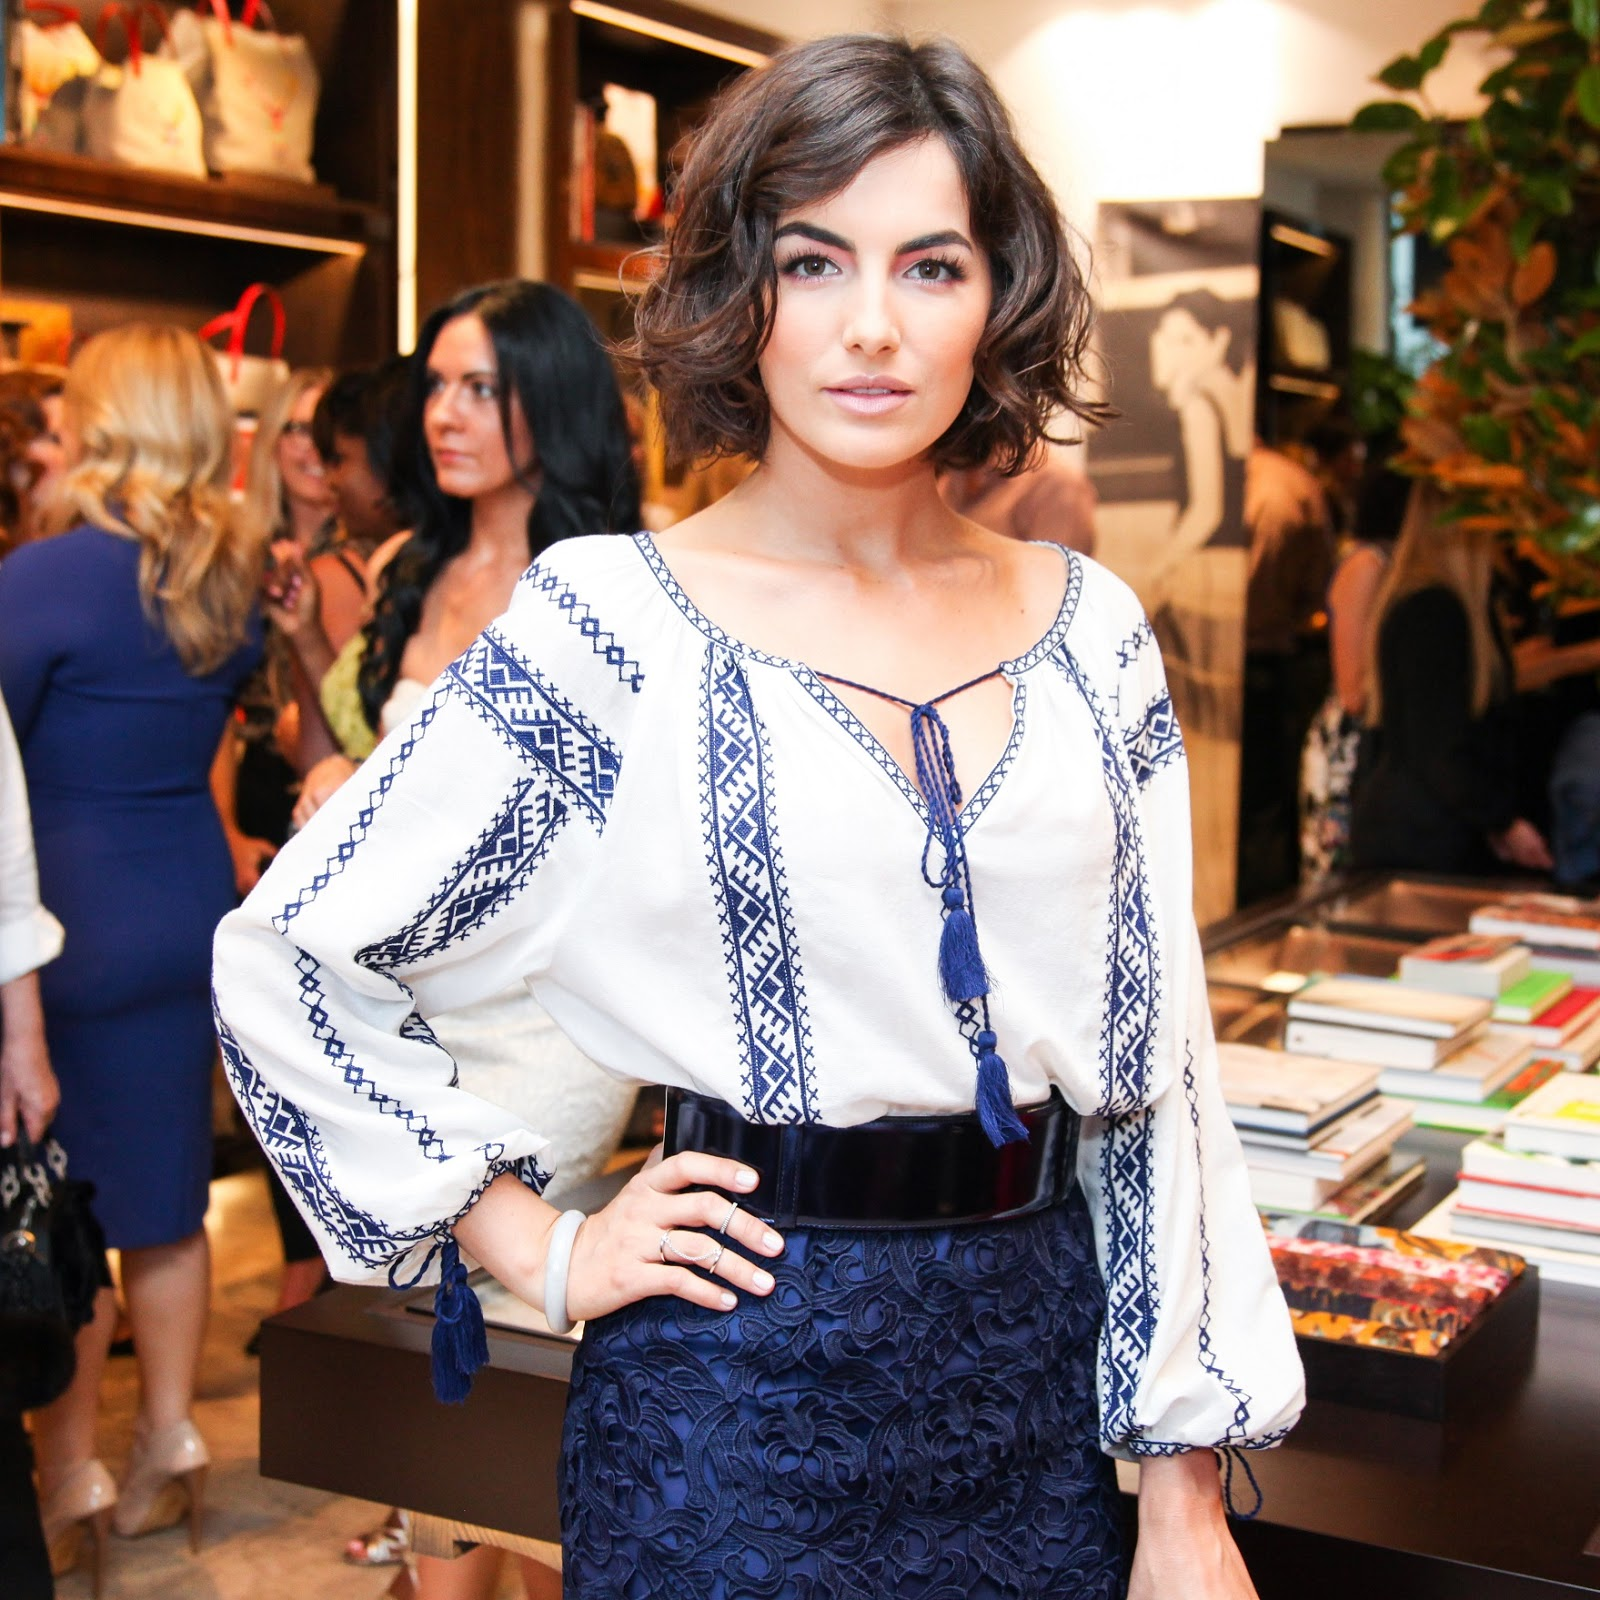 camilla personals A complete dating profile of all camilla belle boyfriend or husband and all relationships she had in past also, know who is she dating in 2017 camilla belle is a famous american actress known for her roles in movies like when a stranger calls, 10,000 bc, the quiet, push, breakaway etc.